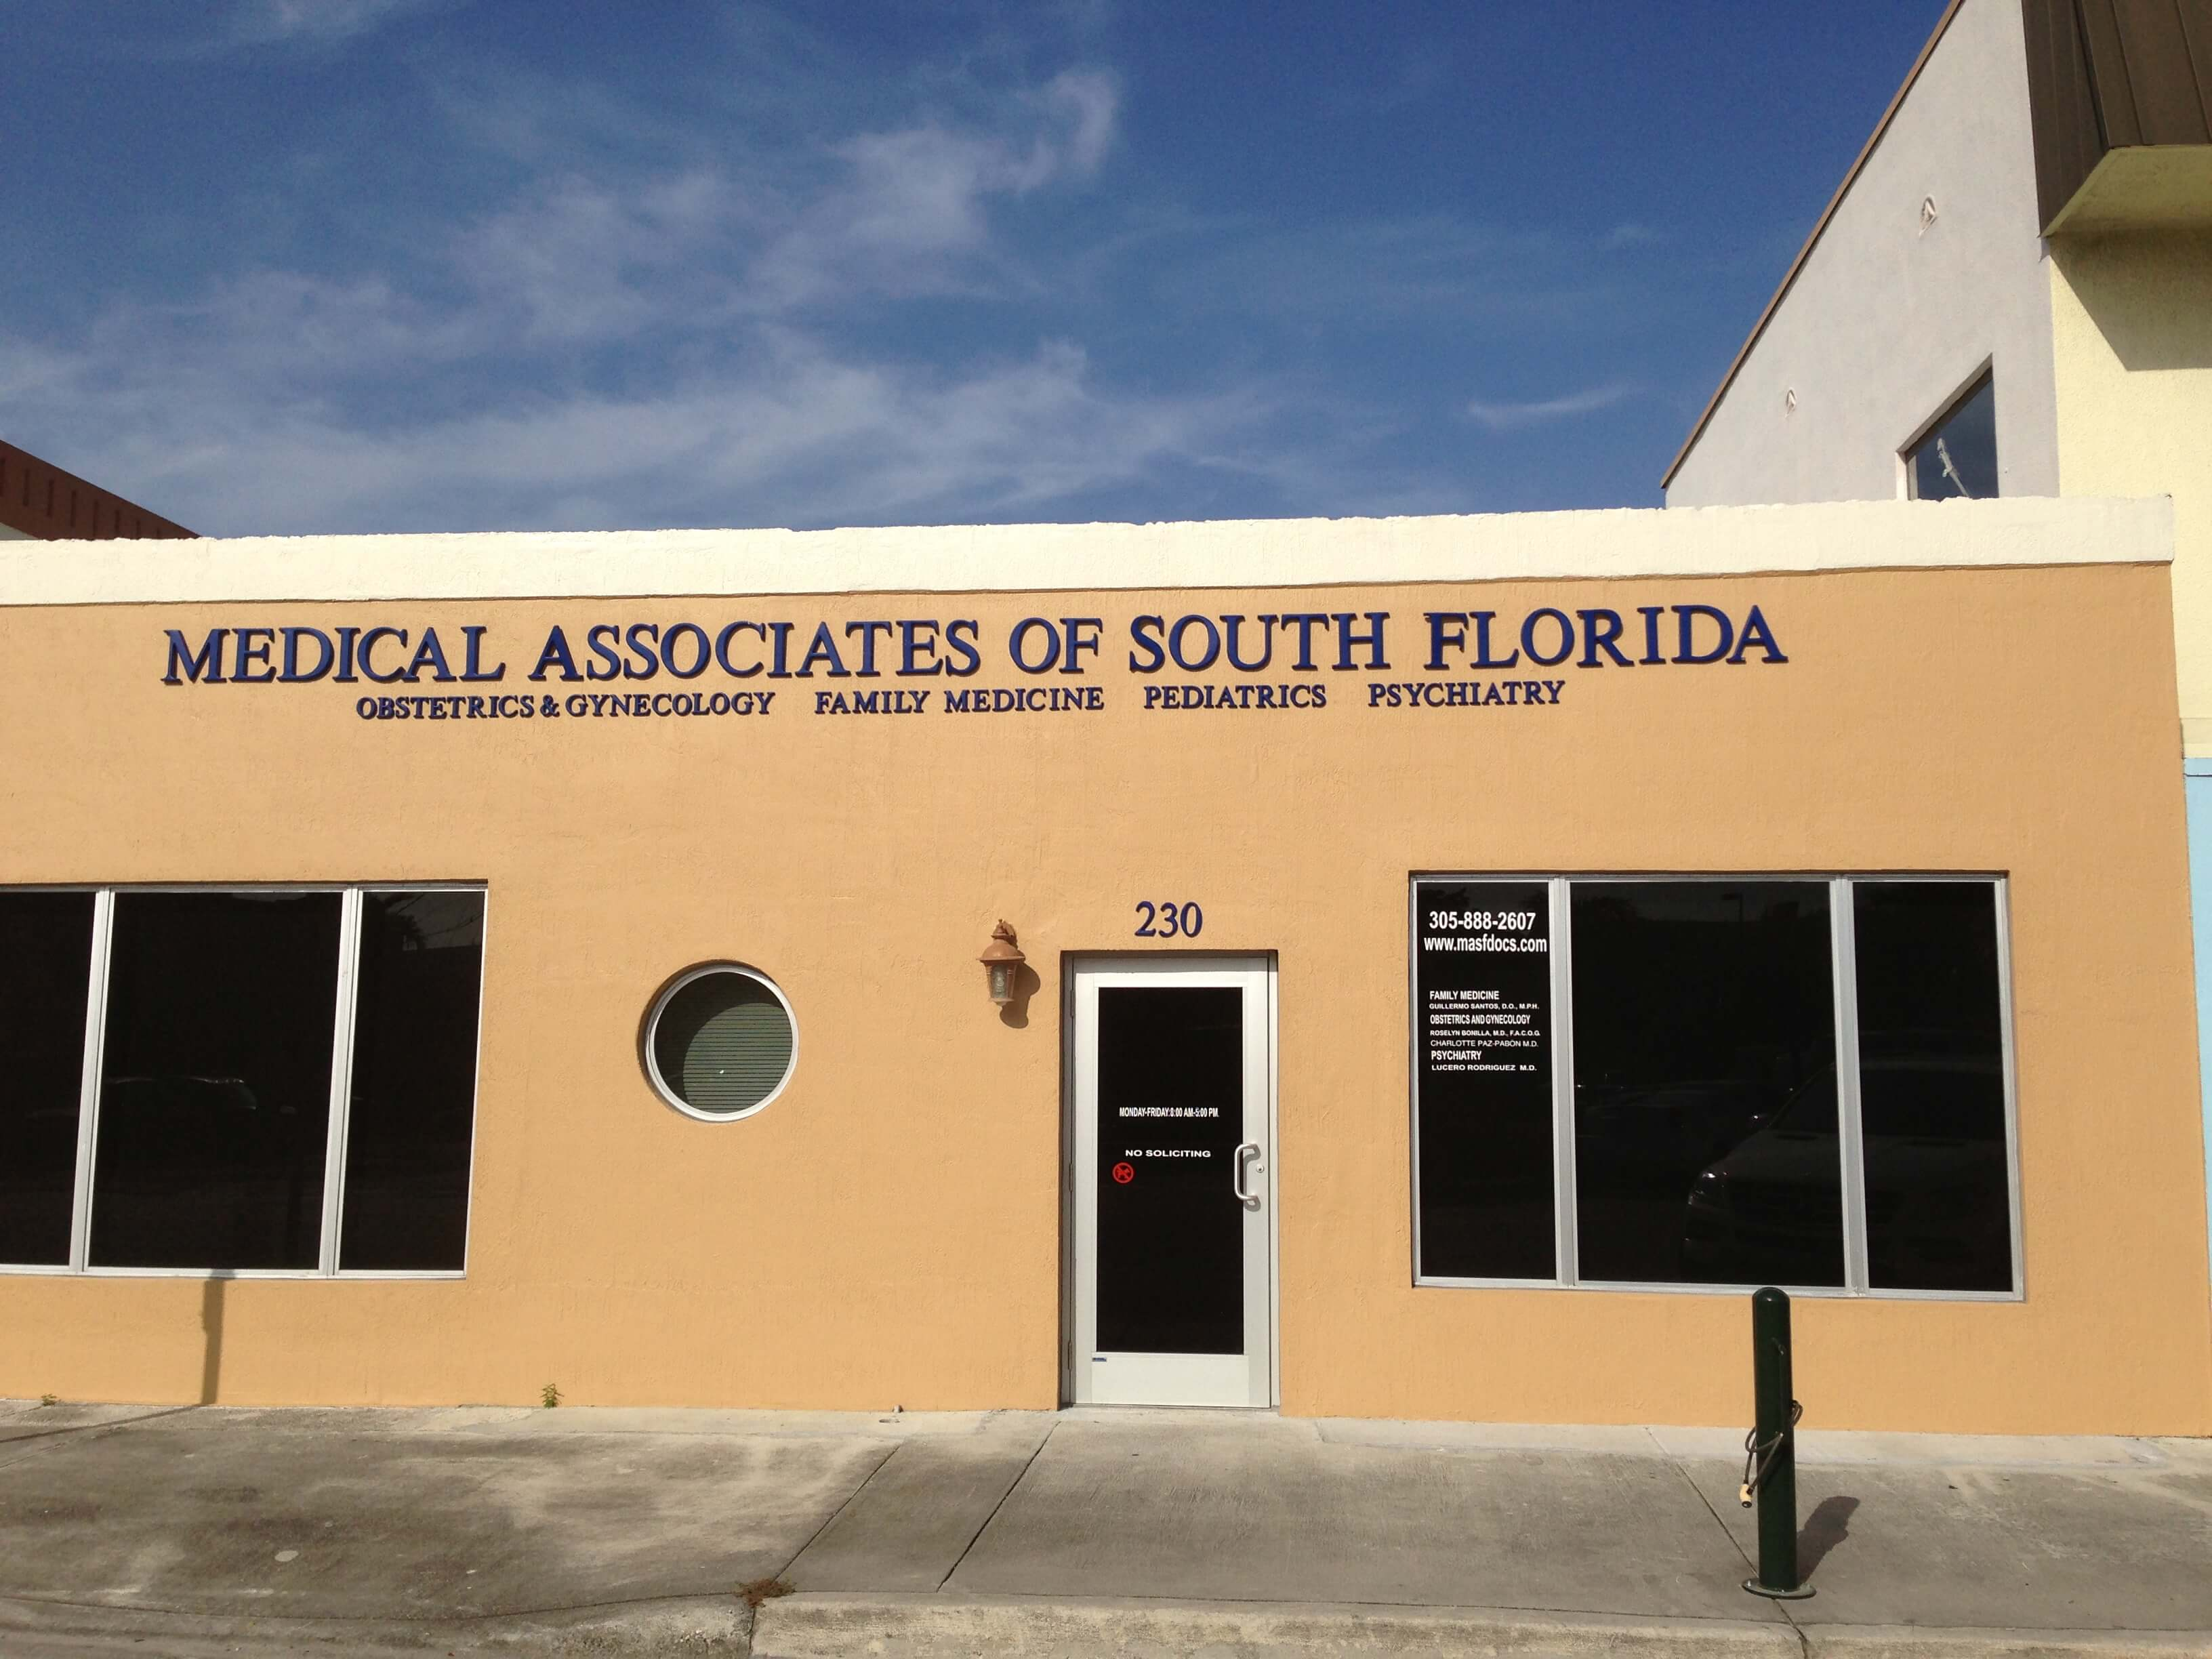 Medical Associates of South Florida